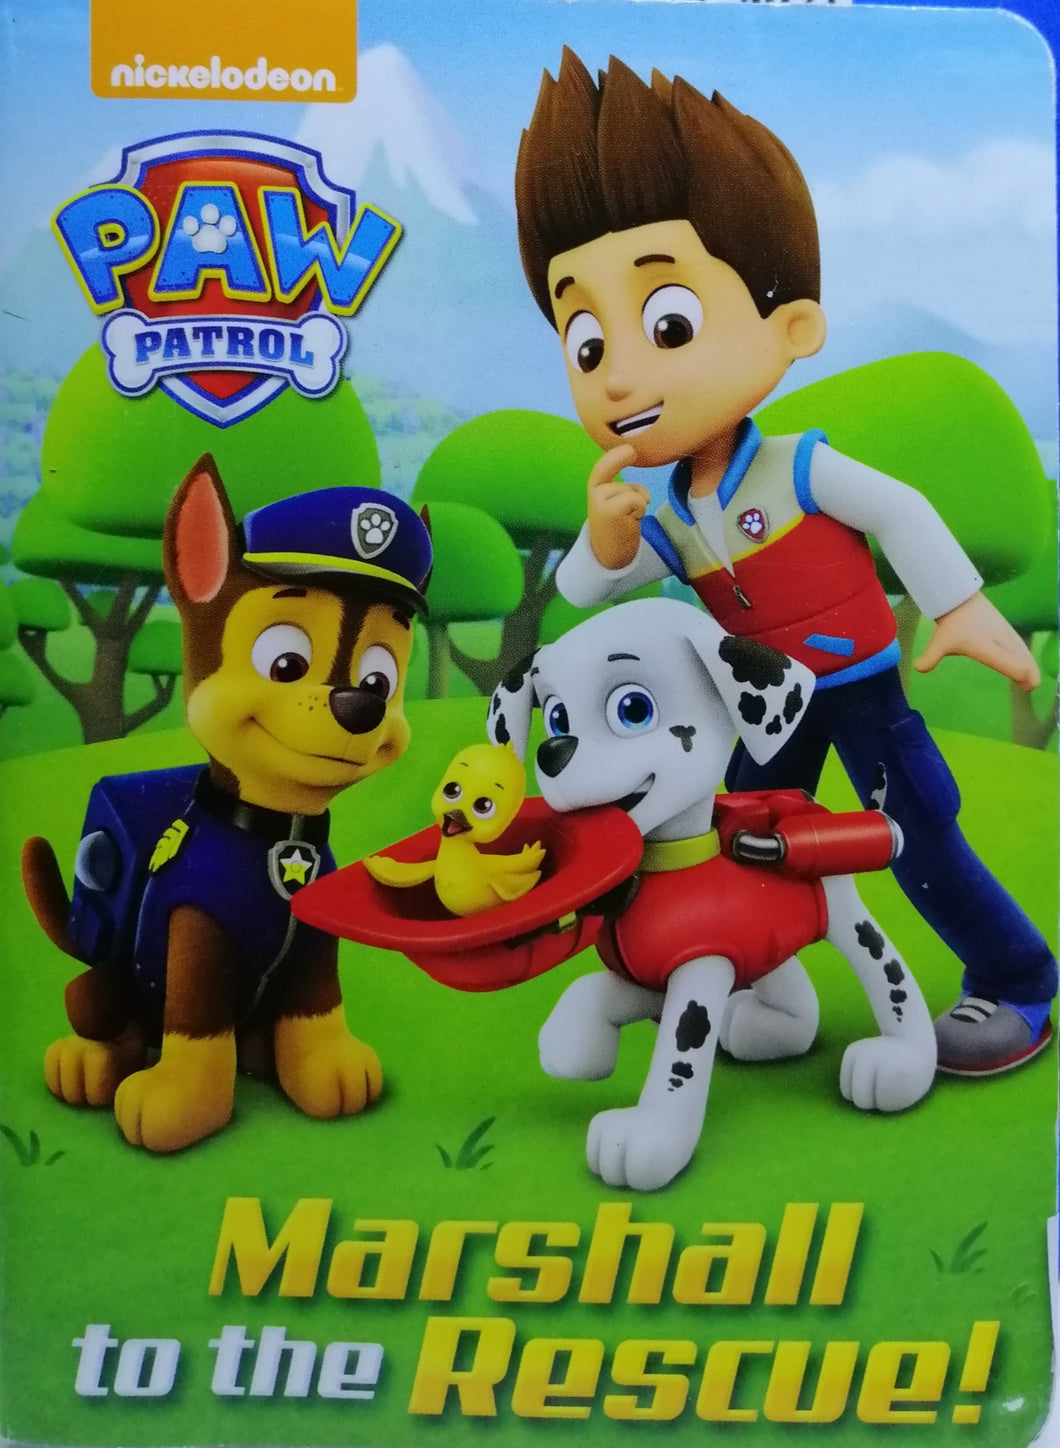 Paw Patrol Marshall to the Rescue!